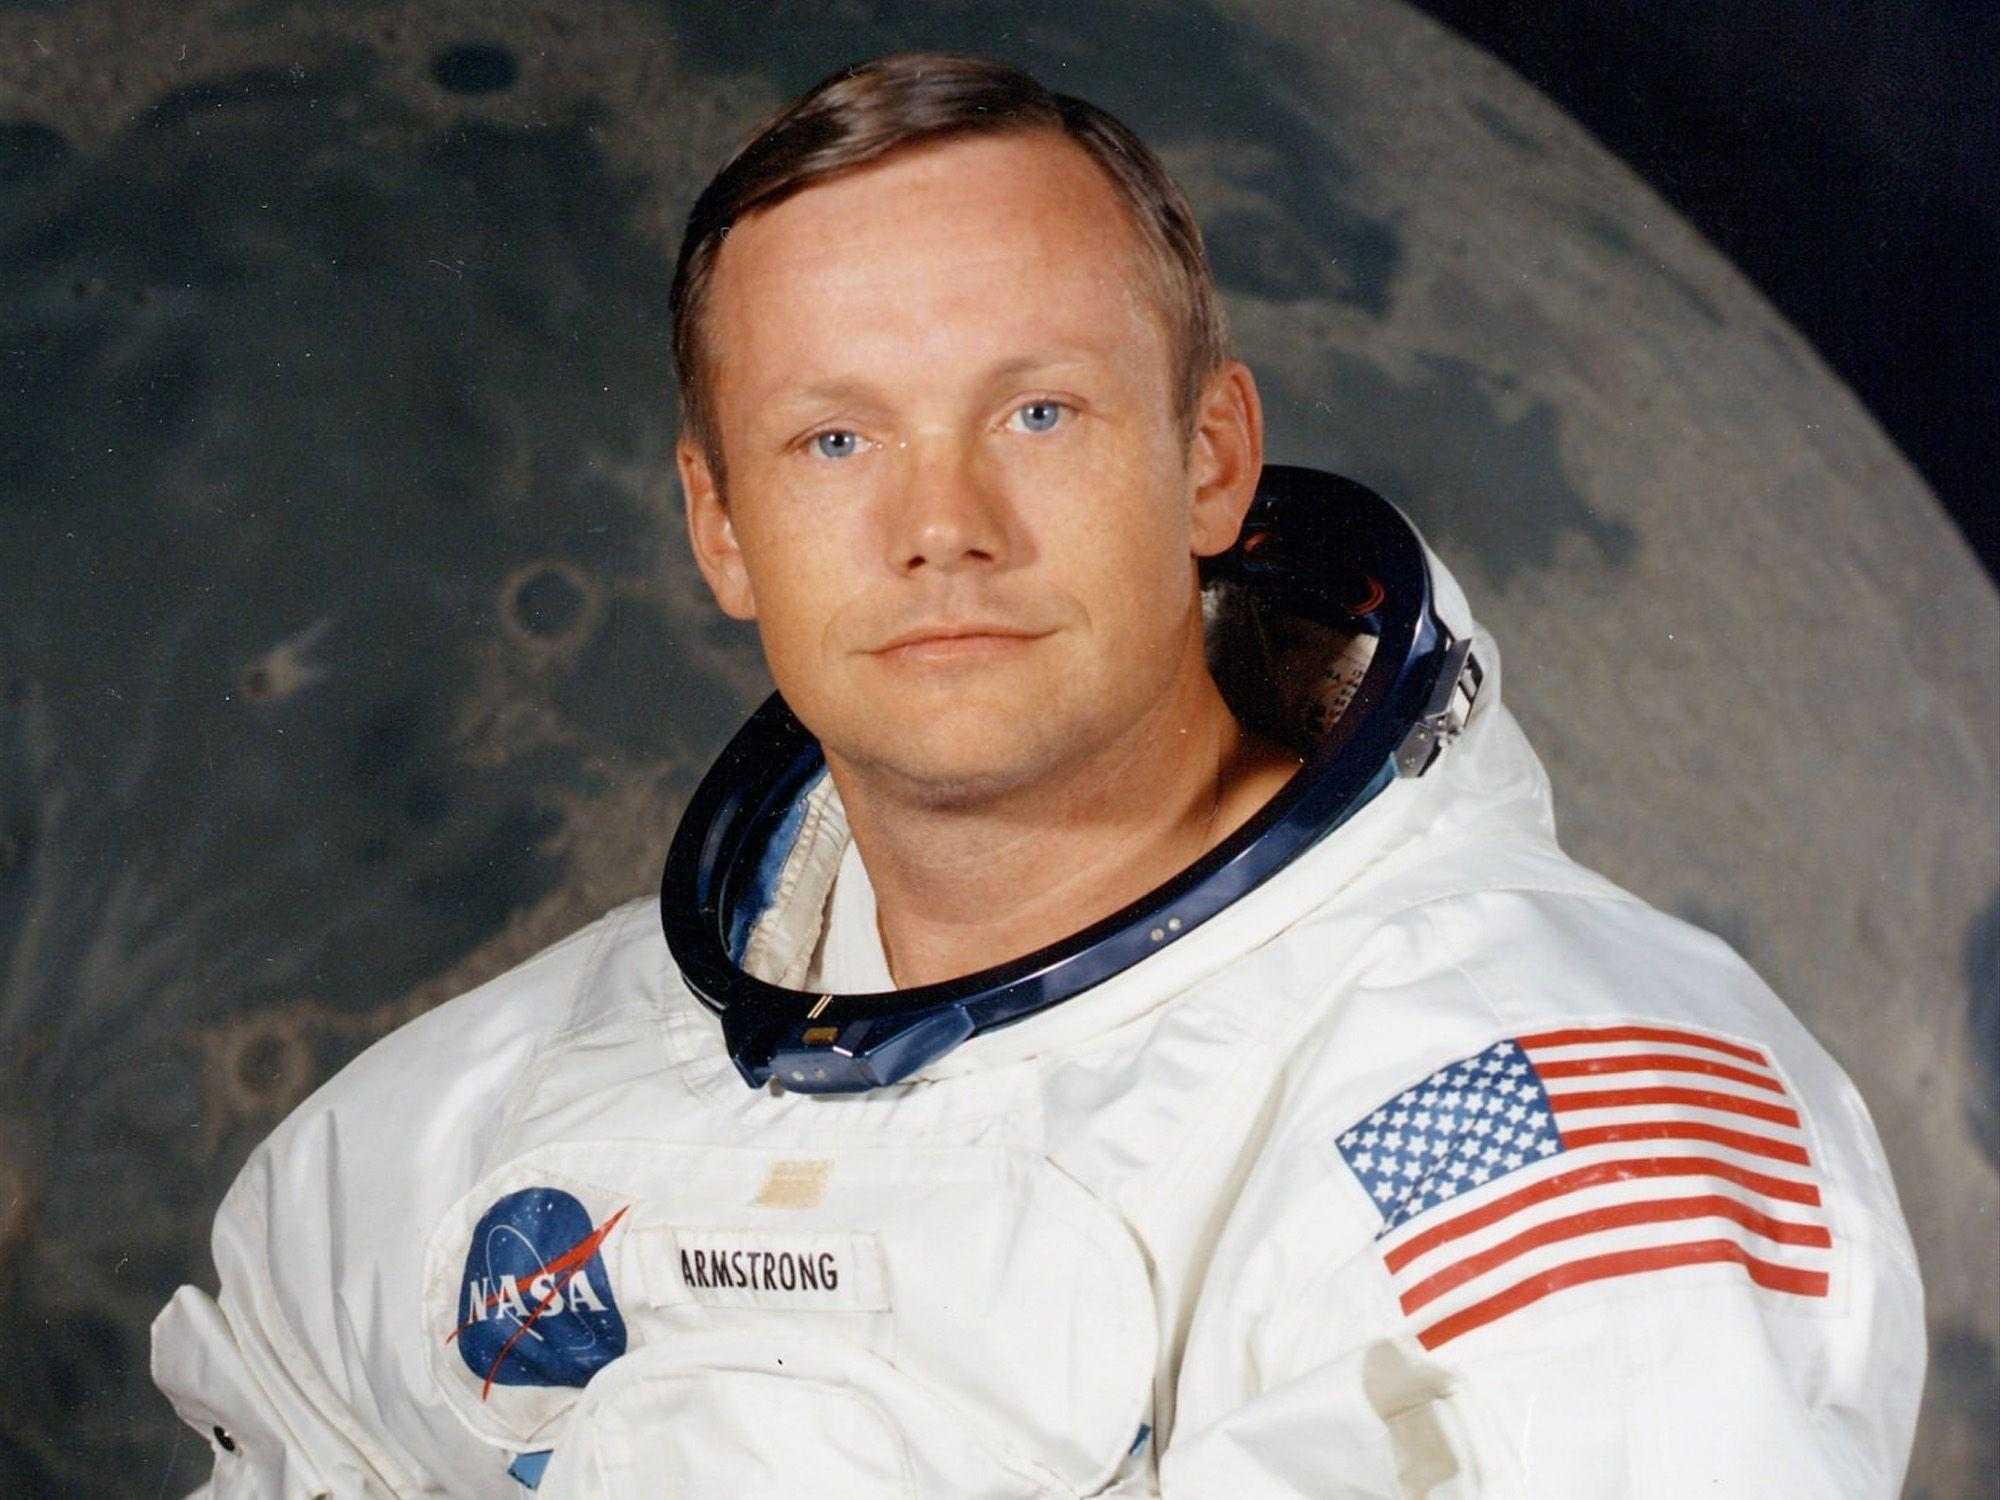 High Quality Neil Armstrong Wallpapers